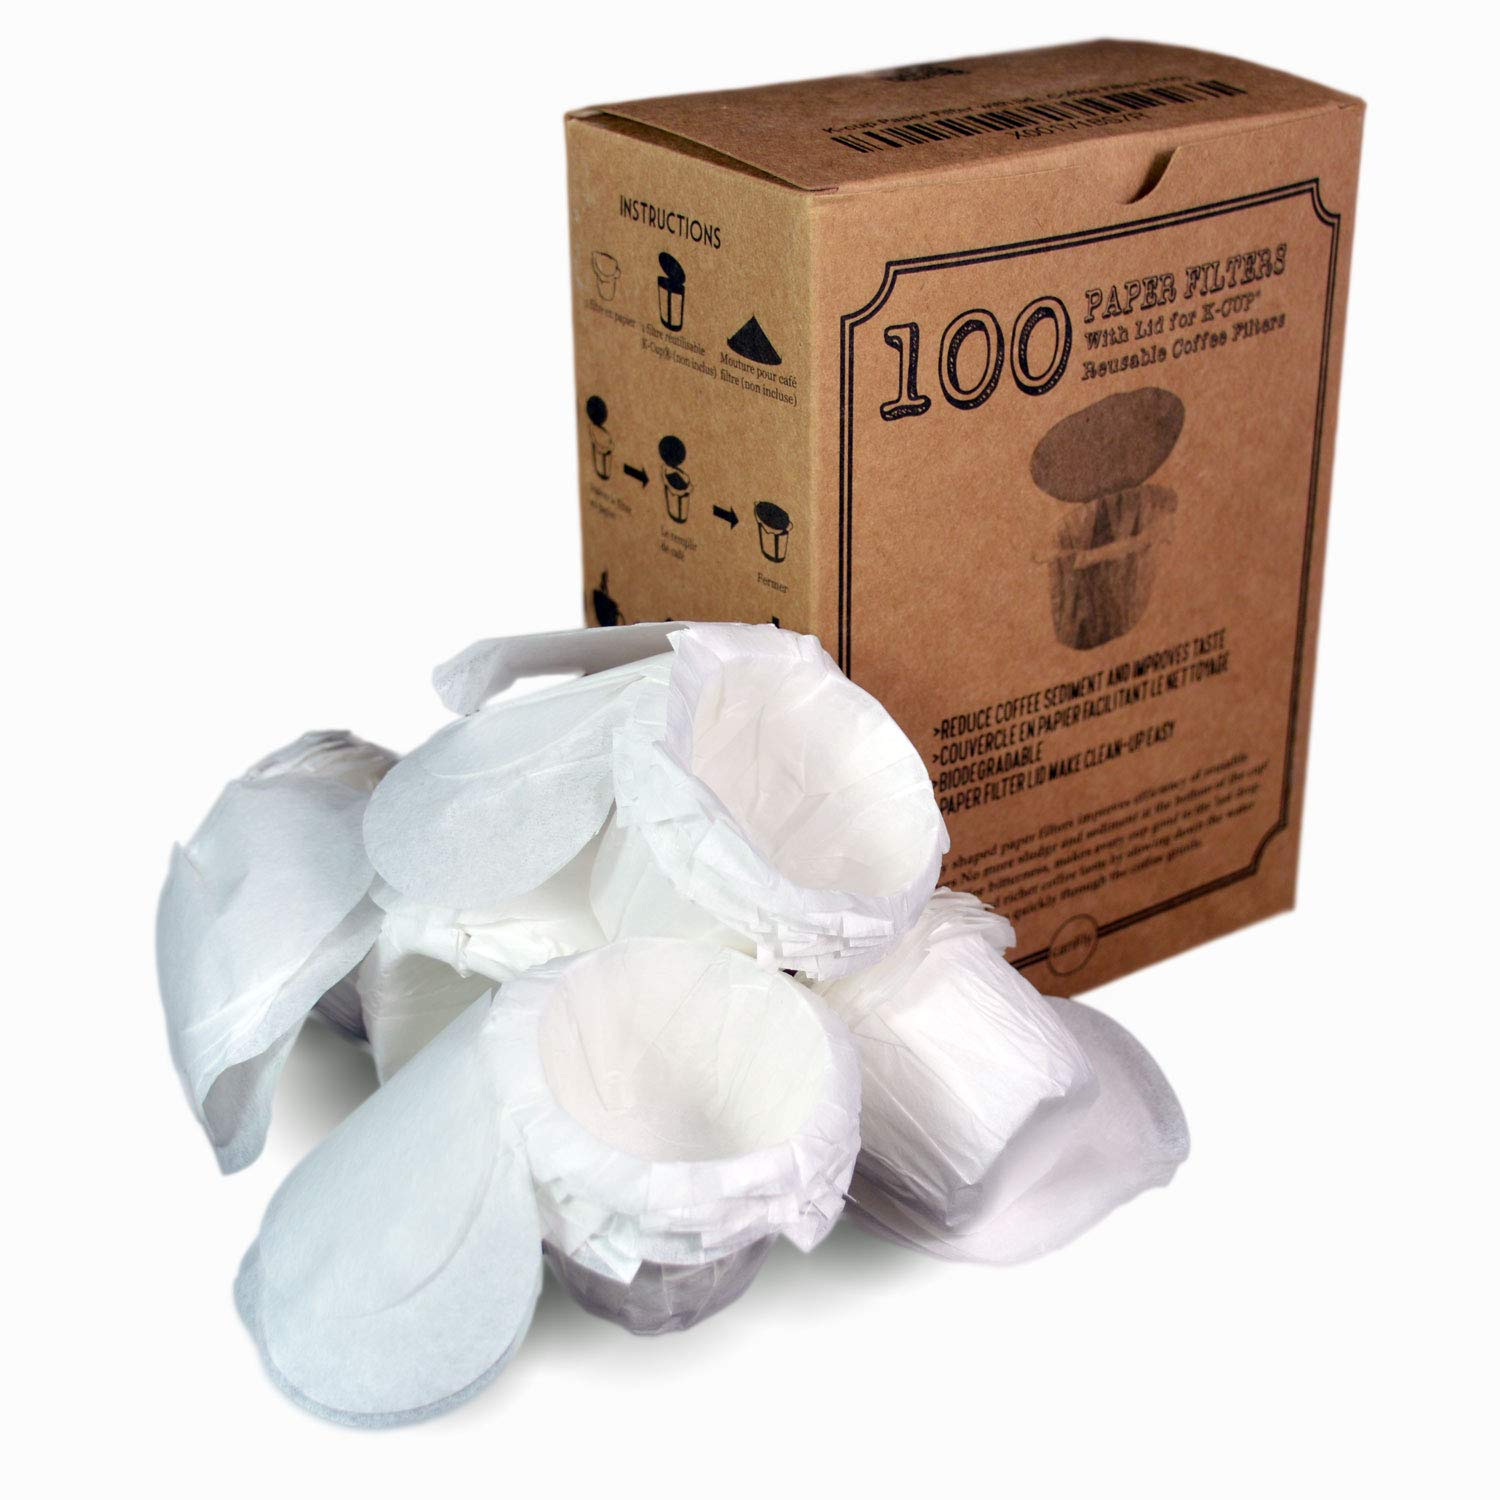 canFly Disposable K-CUP Paper filter with Lid for Keurig single cup coffer filters compatible with Ekobrew, EZ-Cup and other Reusable K-CUP Filters (100 Count)